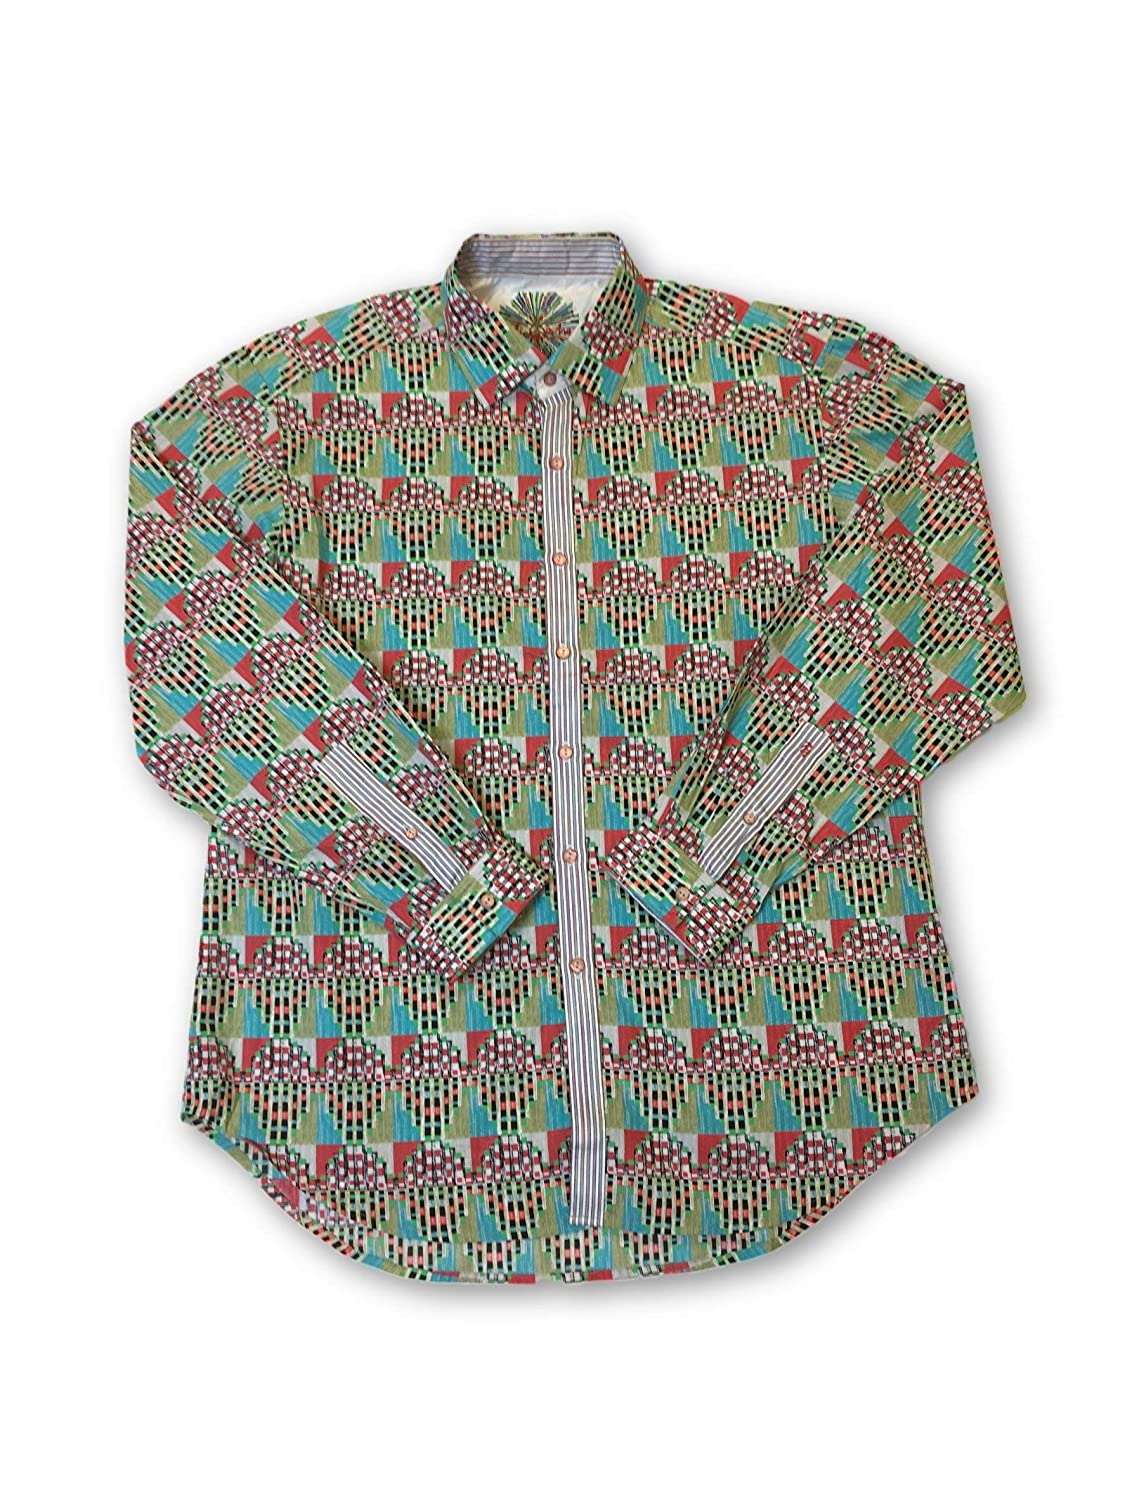 Robert Graham Staghorn Shirt in Multi Colour Abstract Pattern - L